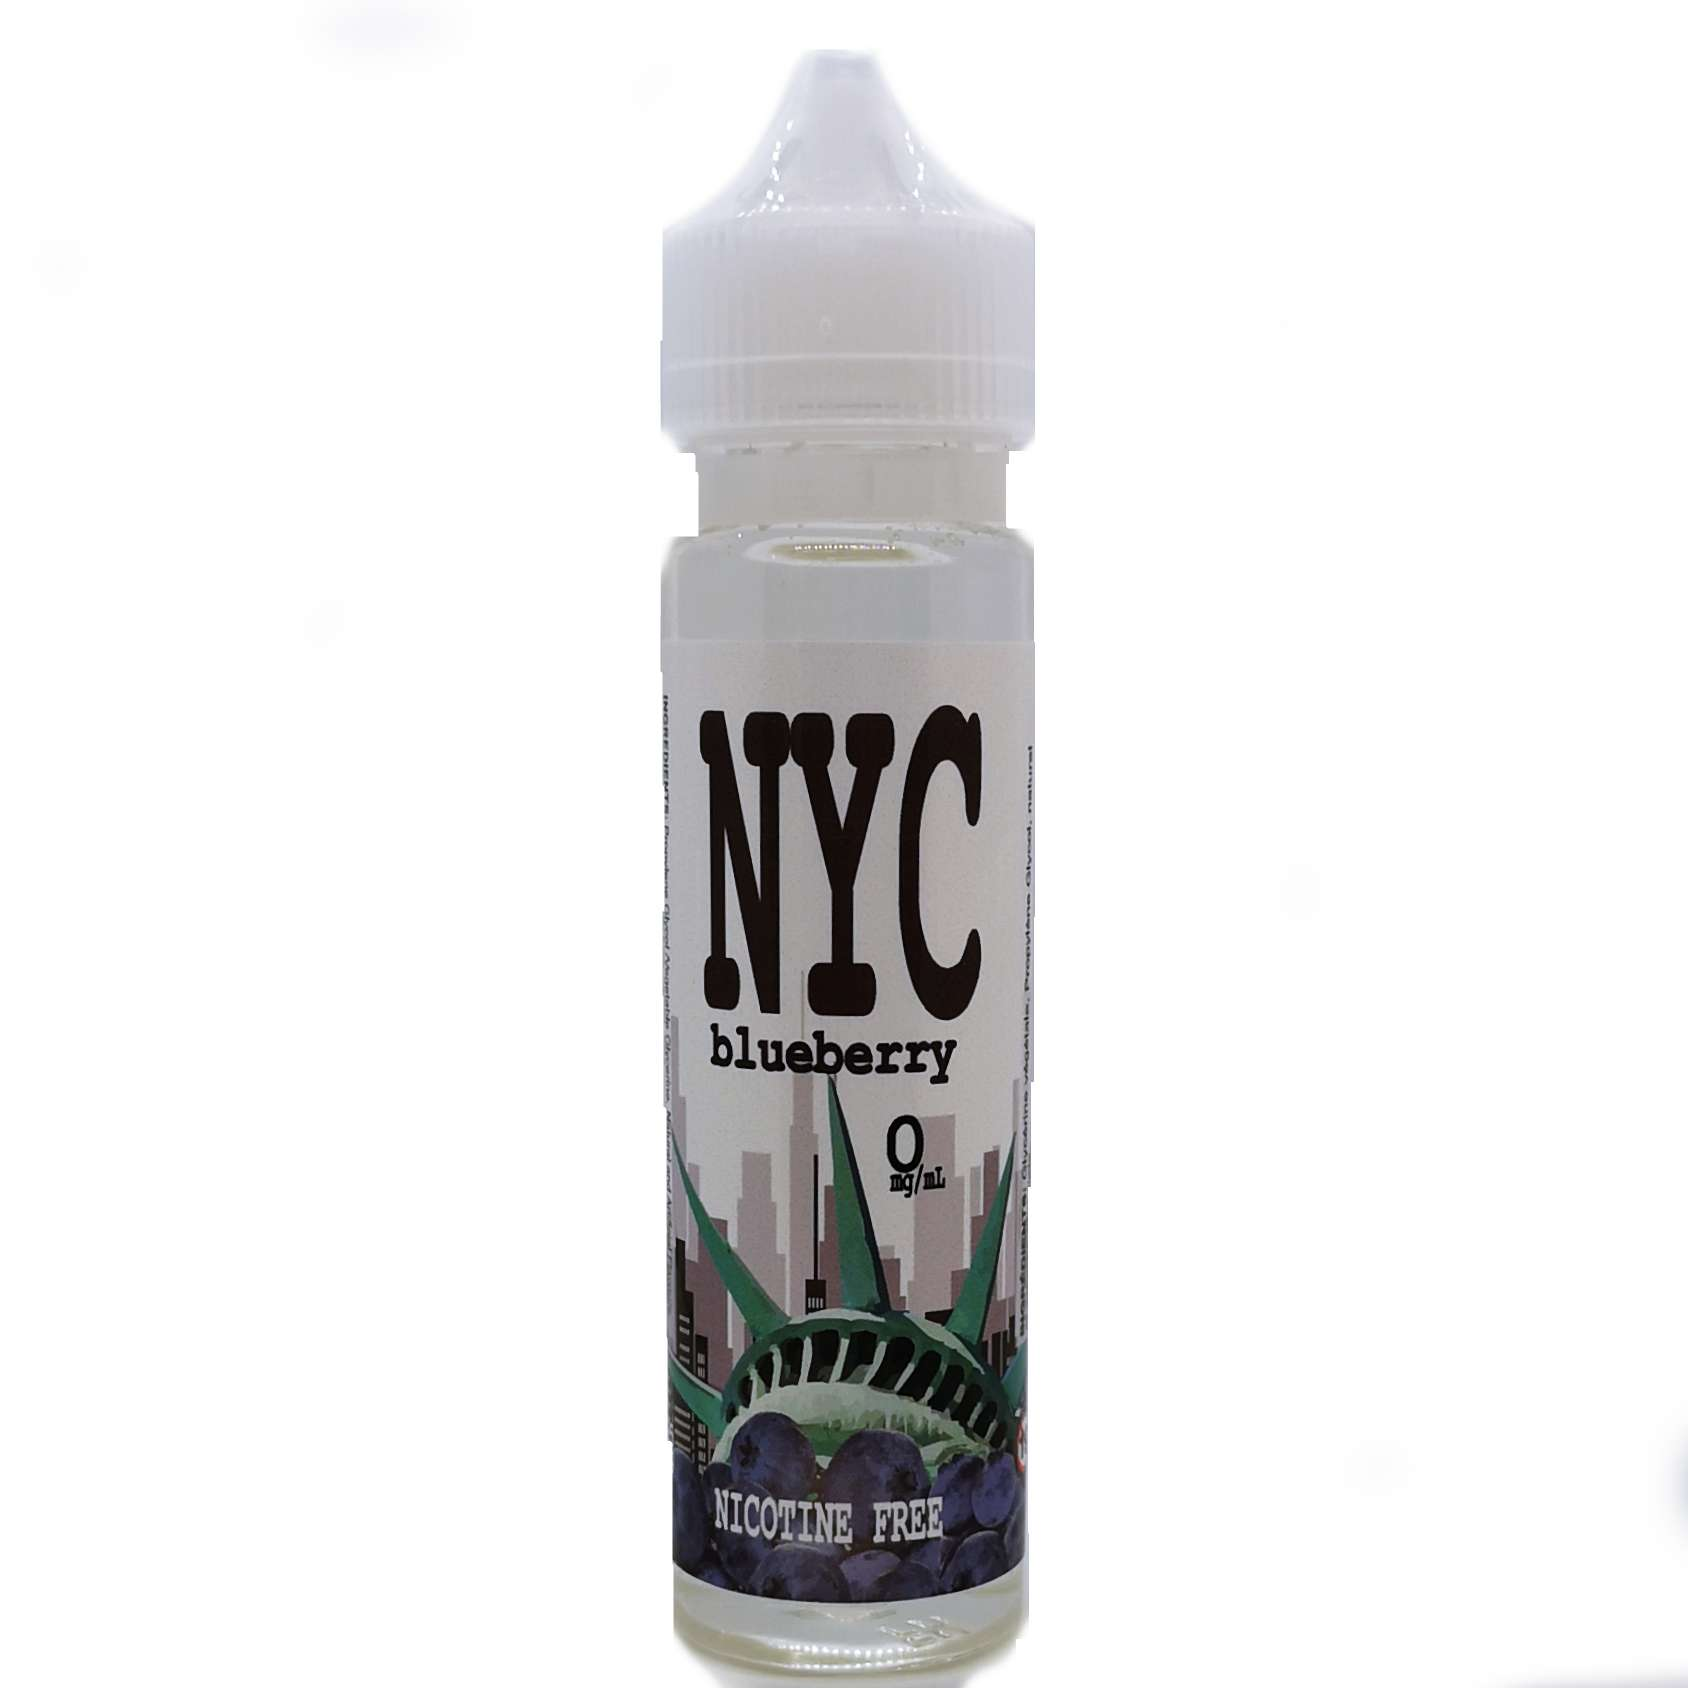 NYC-BLUEBERRY-CHEESECAKE 30mL Creamy Custard MonkEjuice Salt Nic